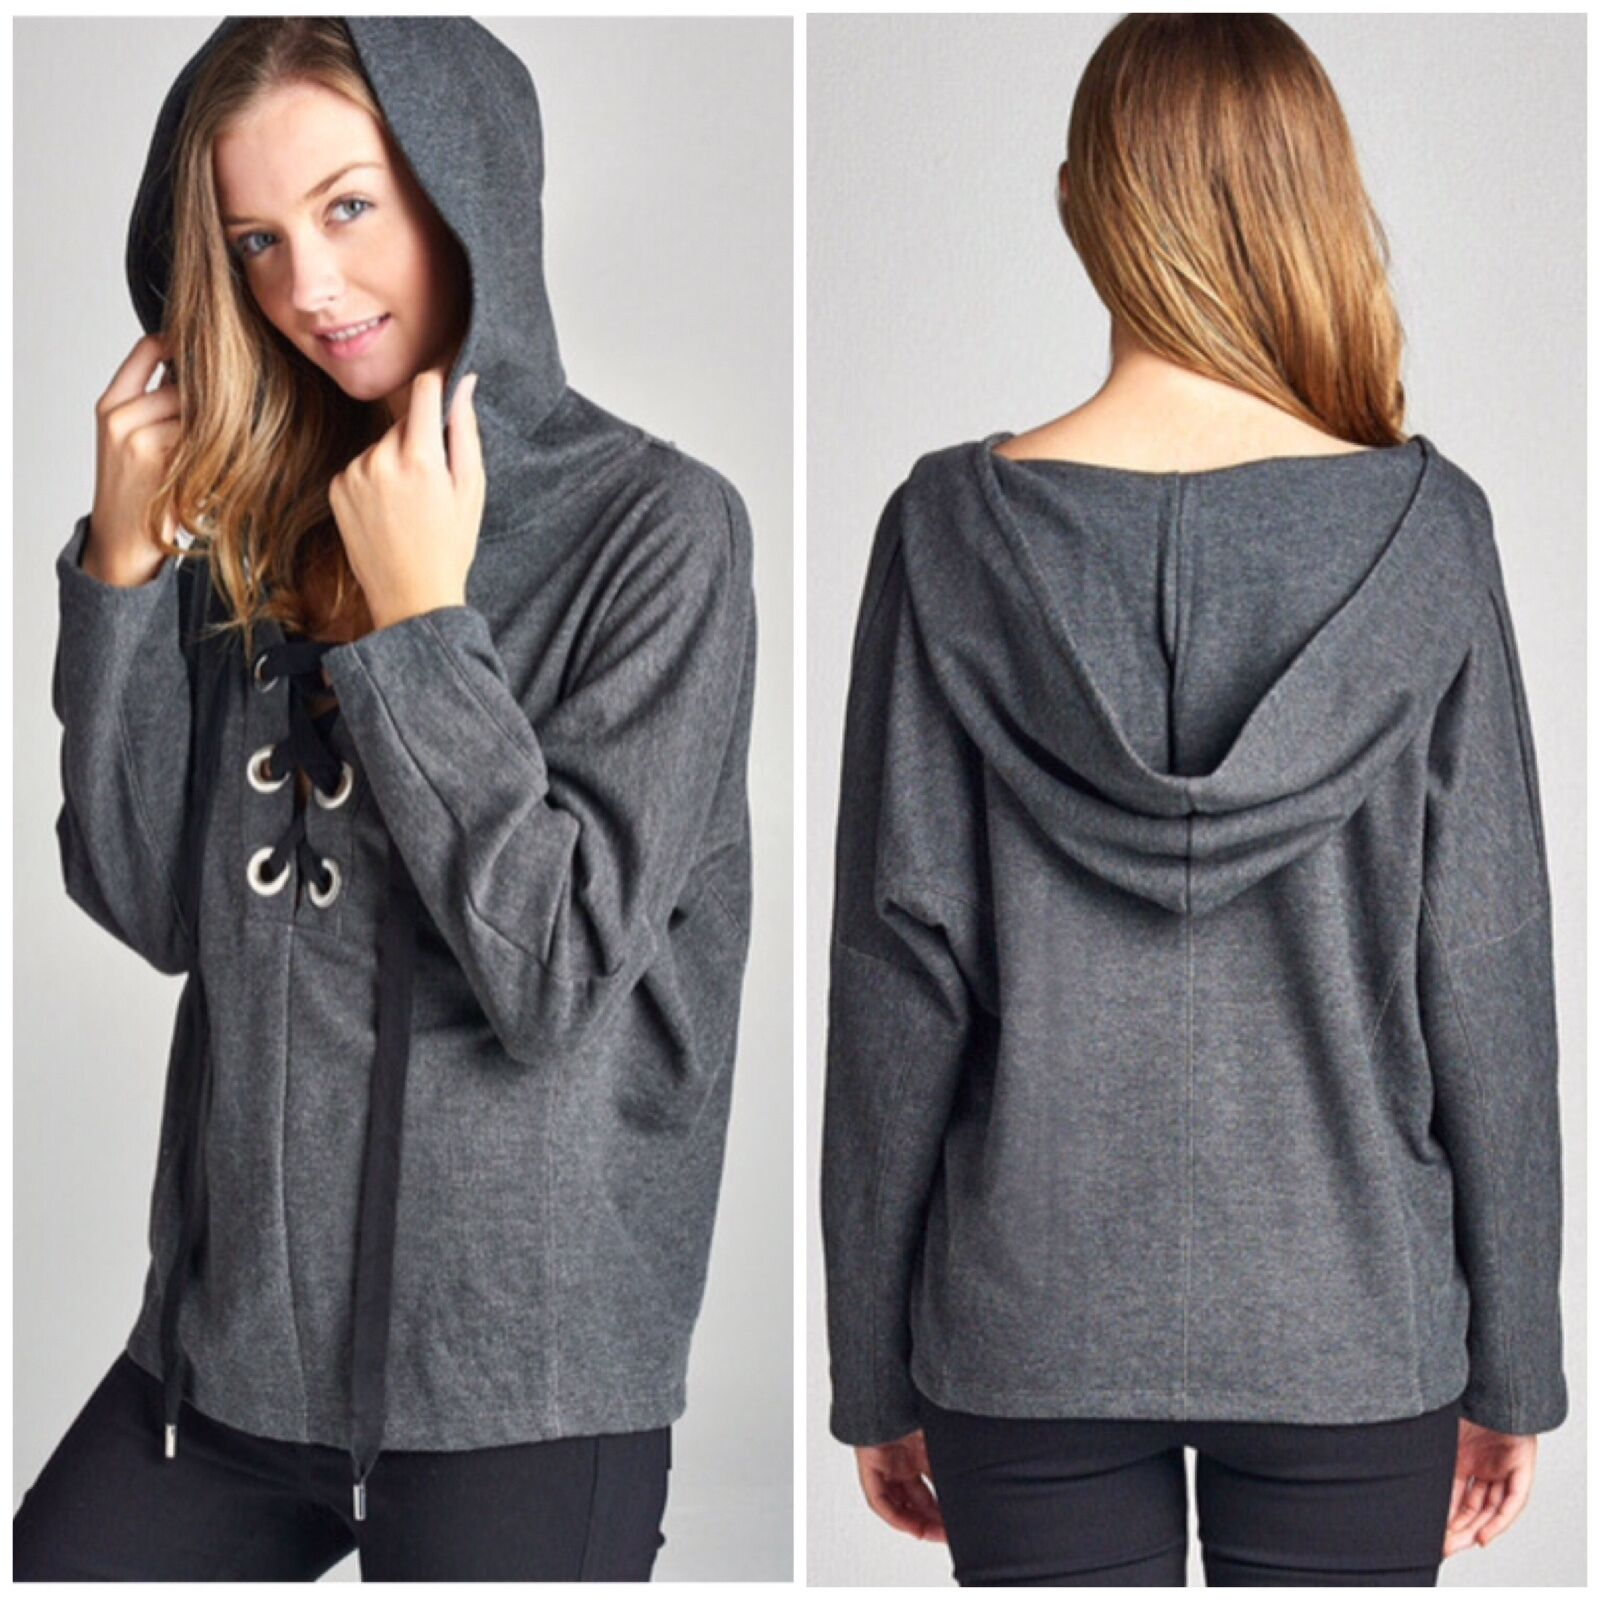 Long Dolman Sleeve Lace-Up Relaxed Charcoal French Terry Pull Over Hoodie Top